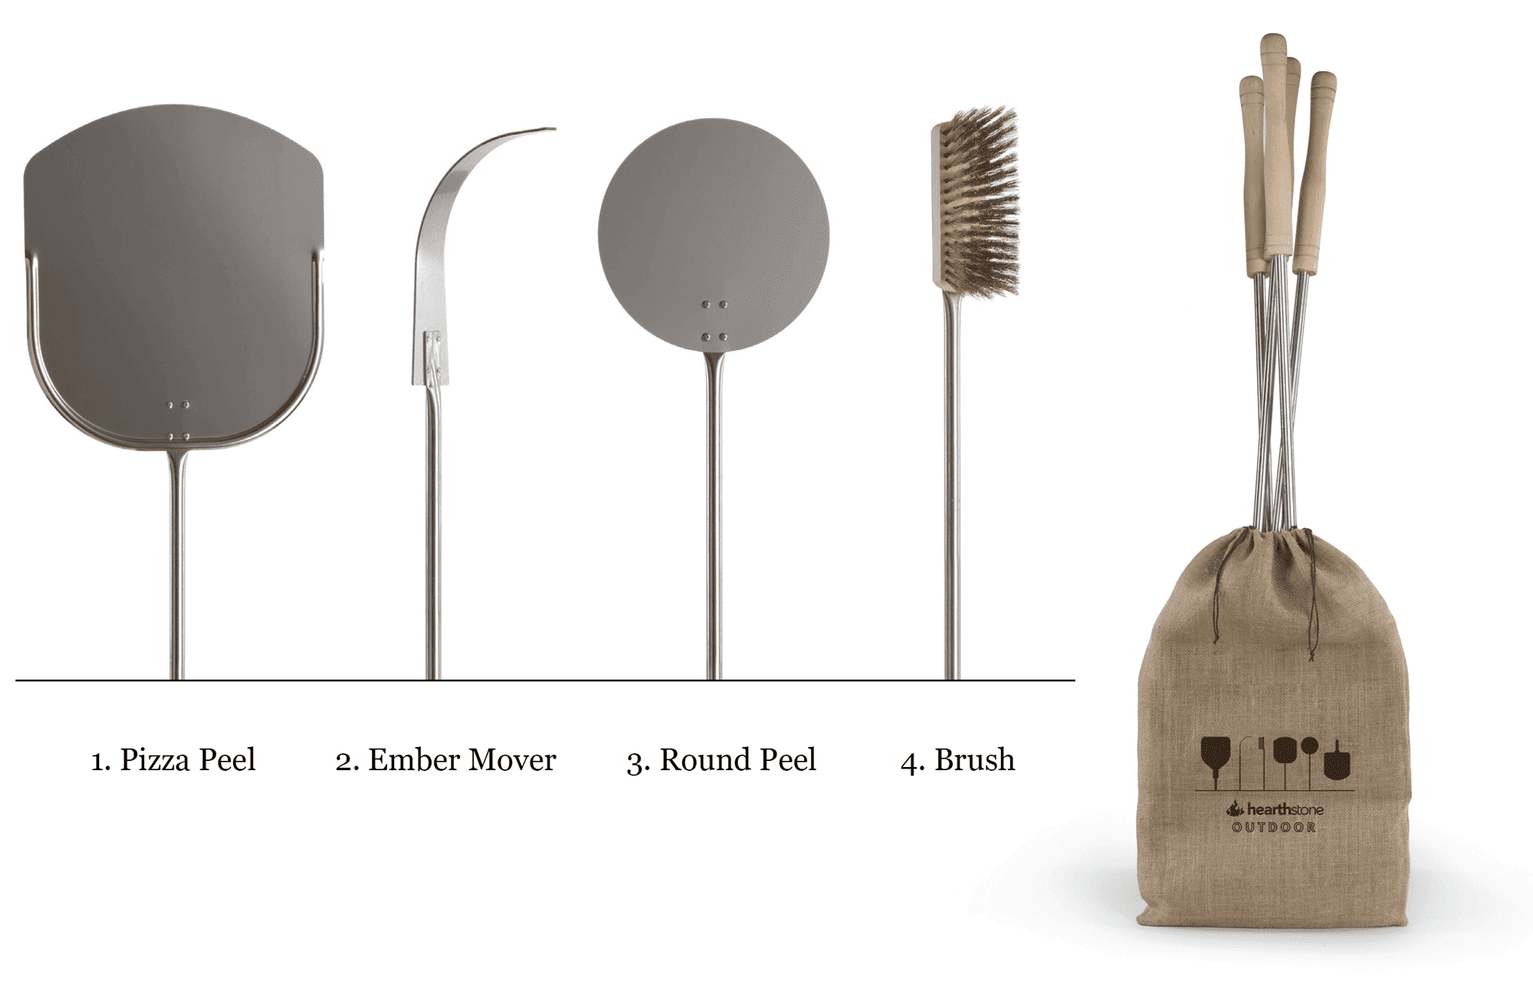 Pizza Peel And Tool Set - 4 Pieces - Hearthstone